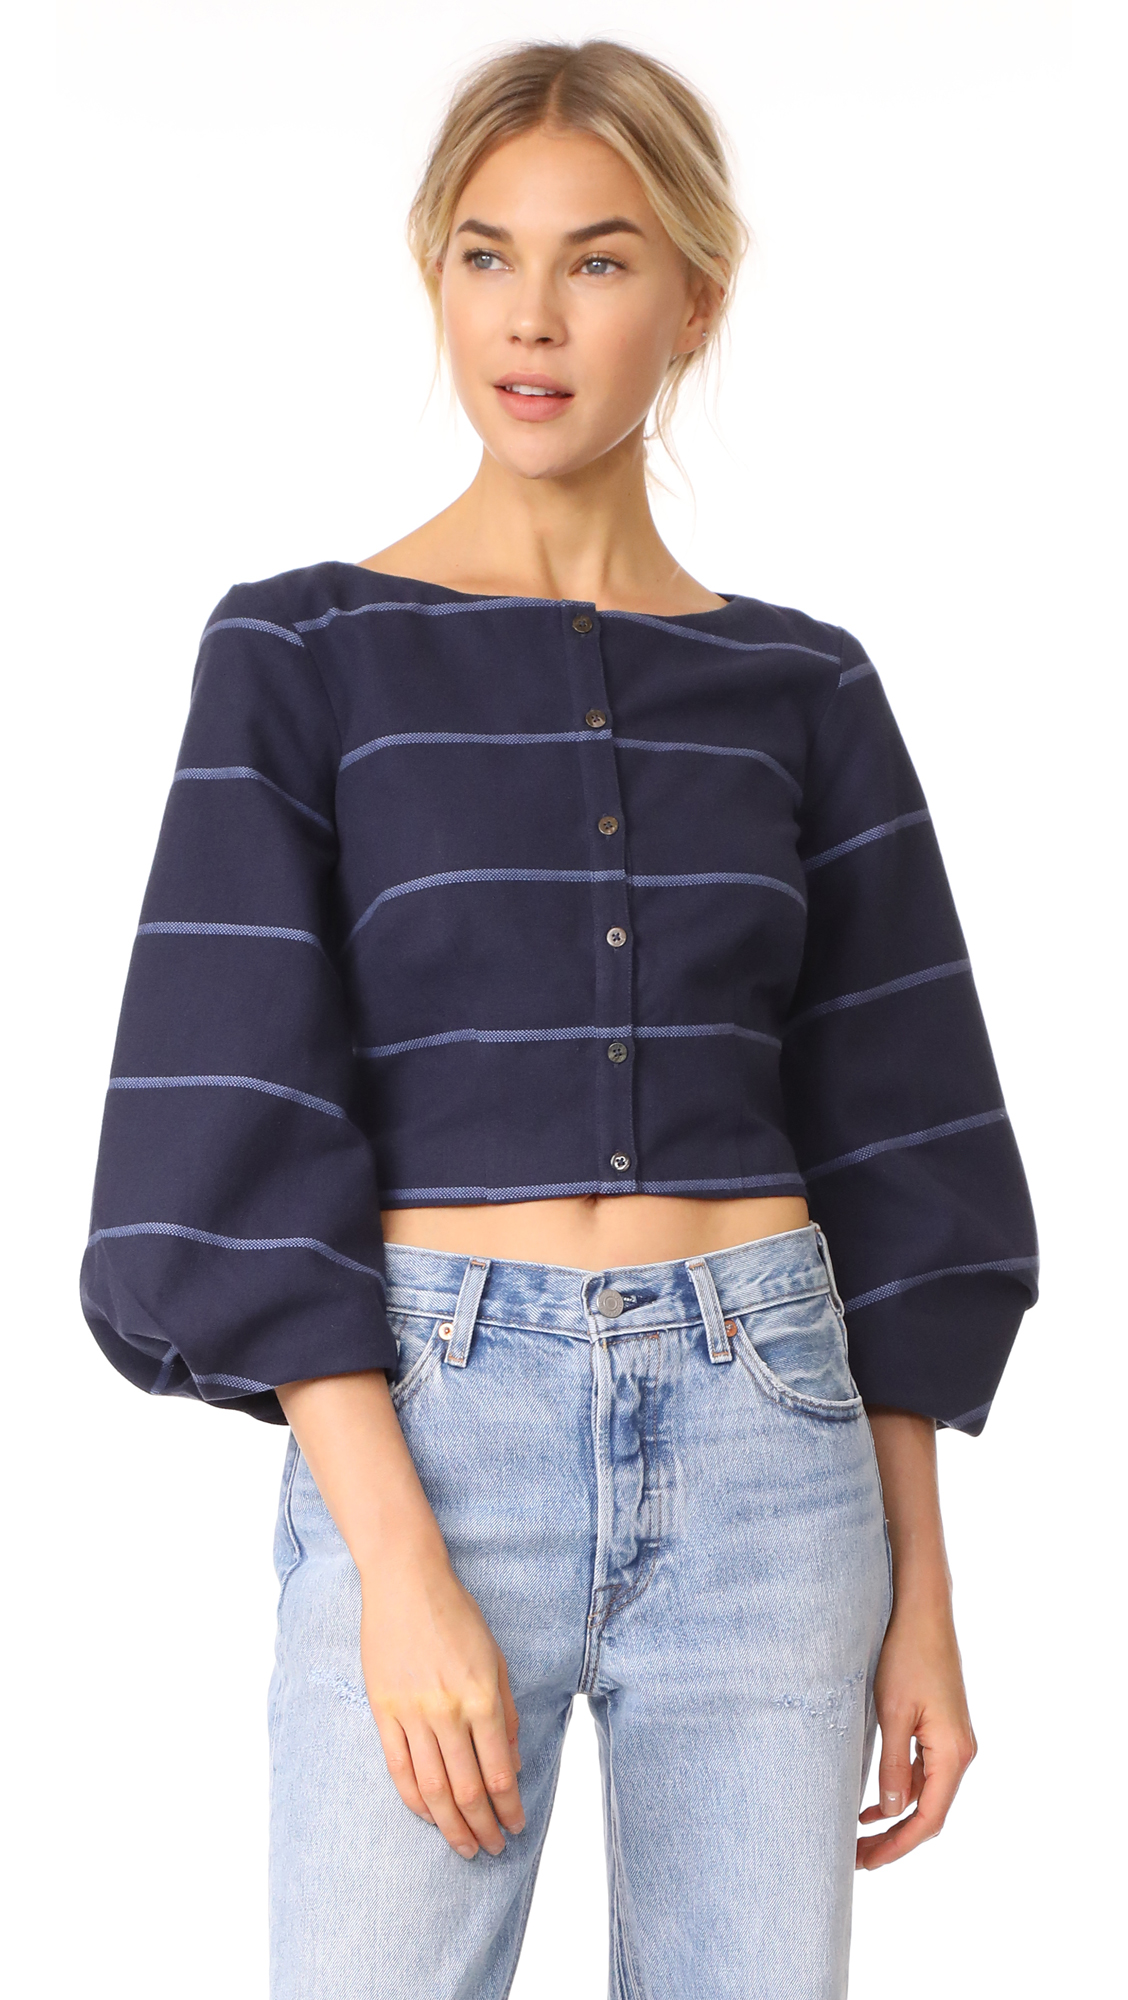 Mara Hoffman Gertrude Top - Navy Blue